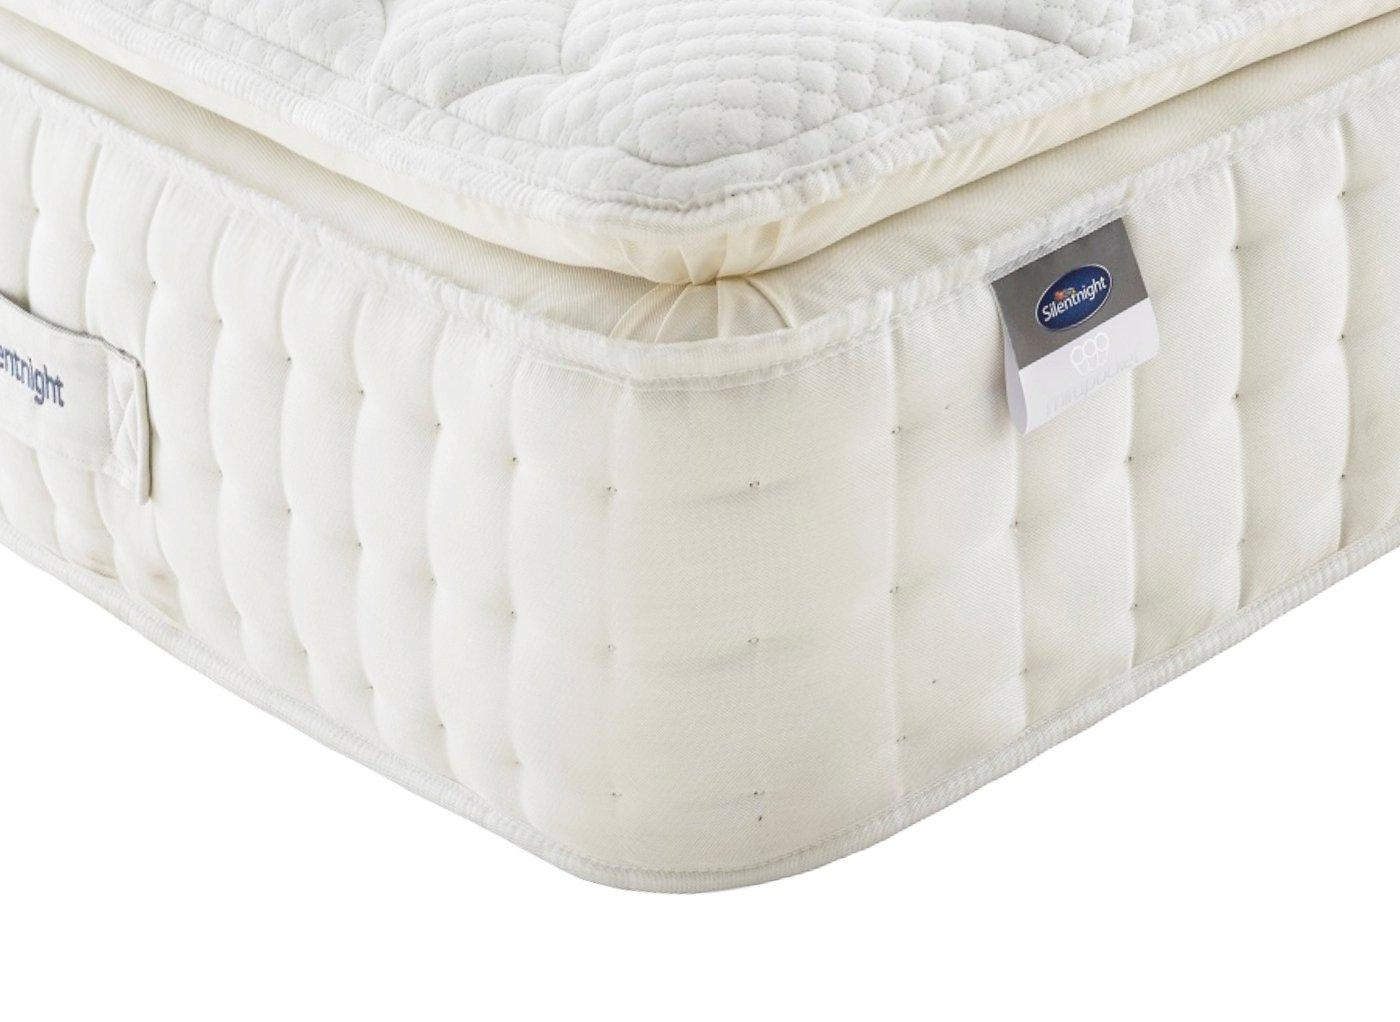 Silentnight Risborough Mirapocket Mattress 4'6 Double